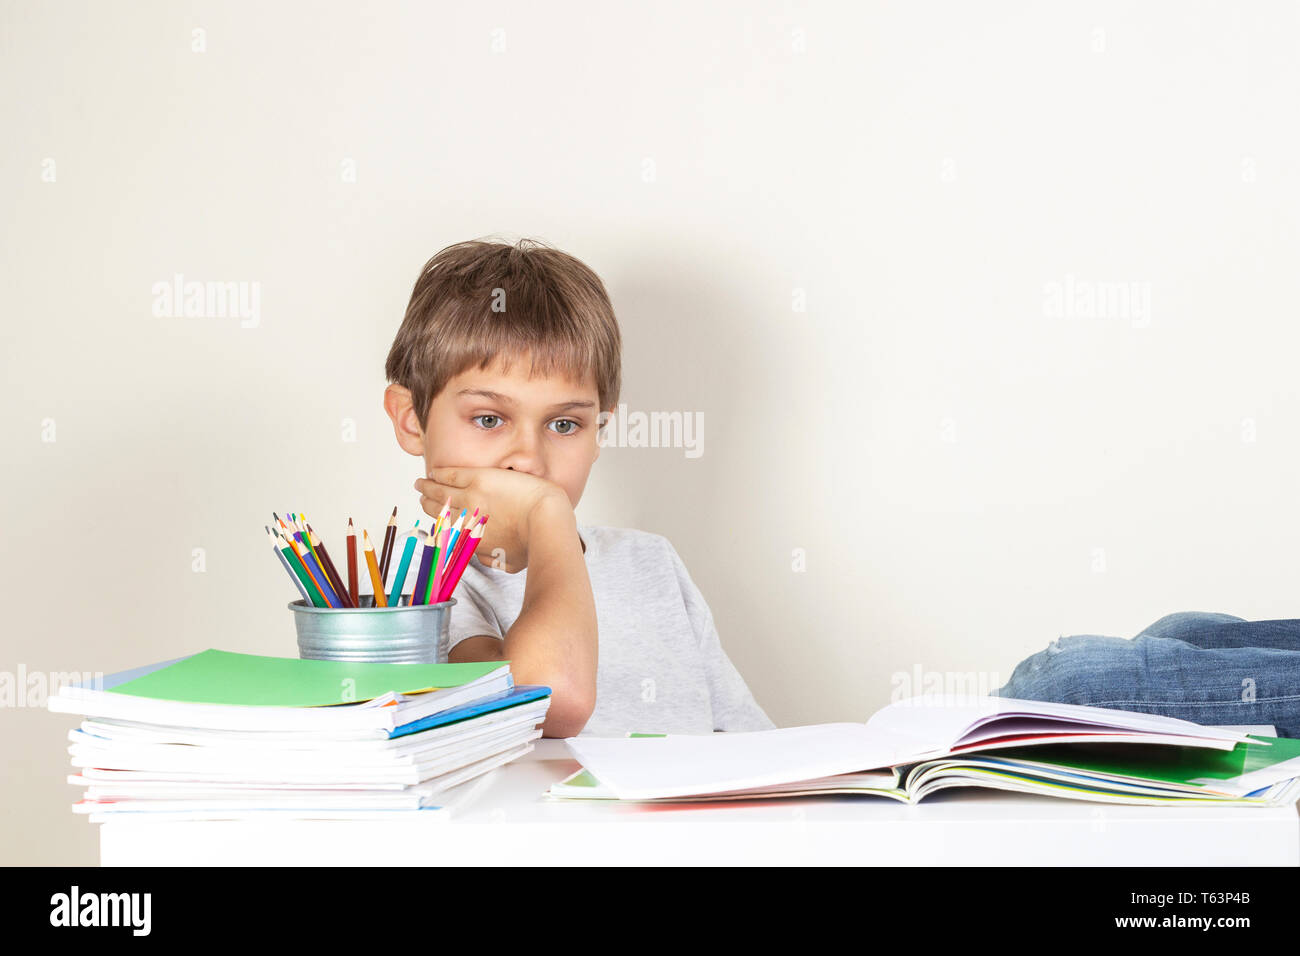 Sad tired child doing homework at the table and thinking - Stock Image